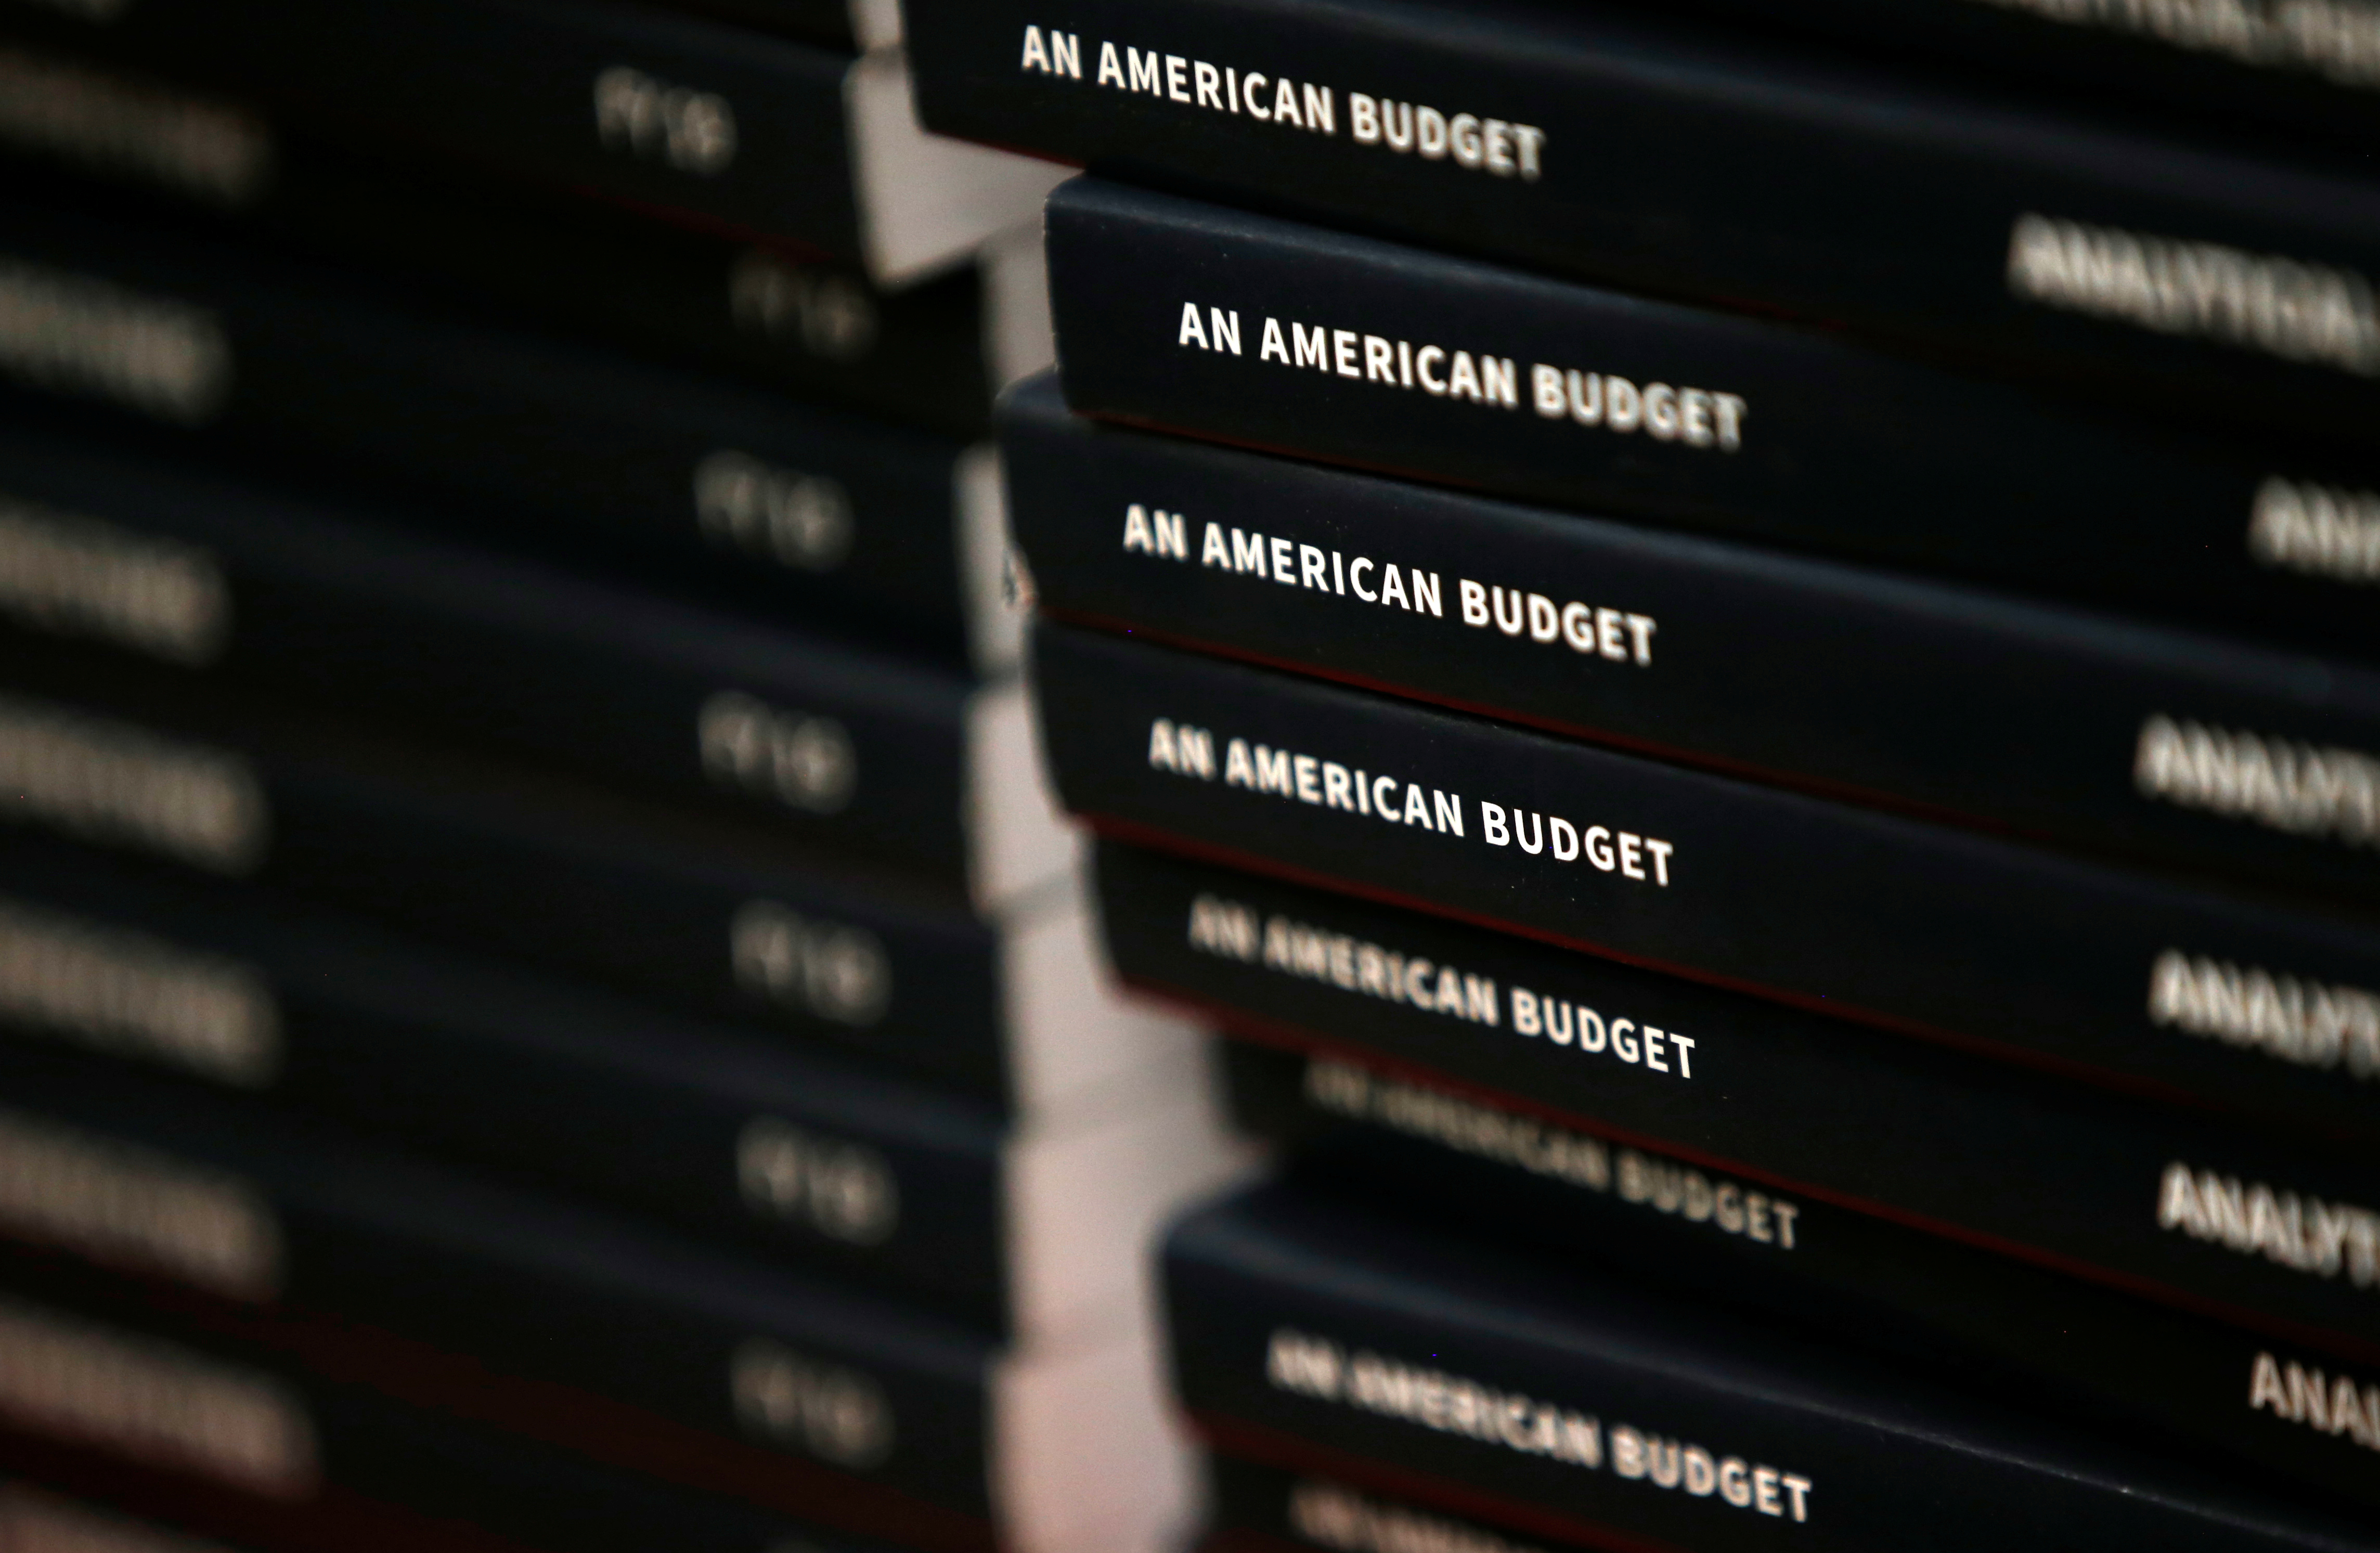 New copies of President Donald Trump's Budget for the U.S. Government for the Fiscal Year 2019 lay on a display table at the U.S. Government Publishing Office.